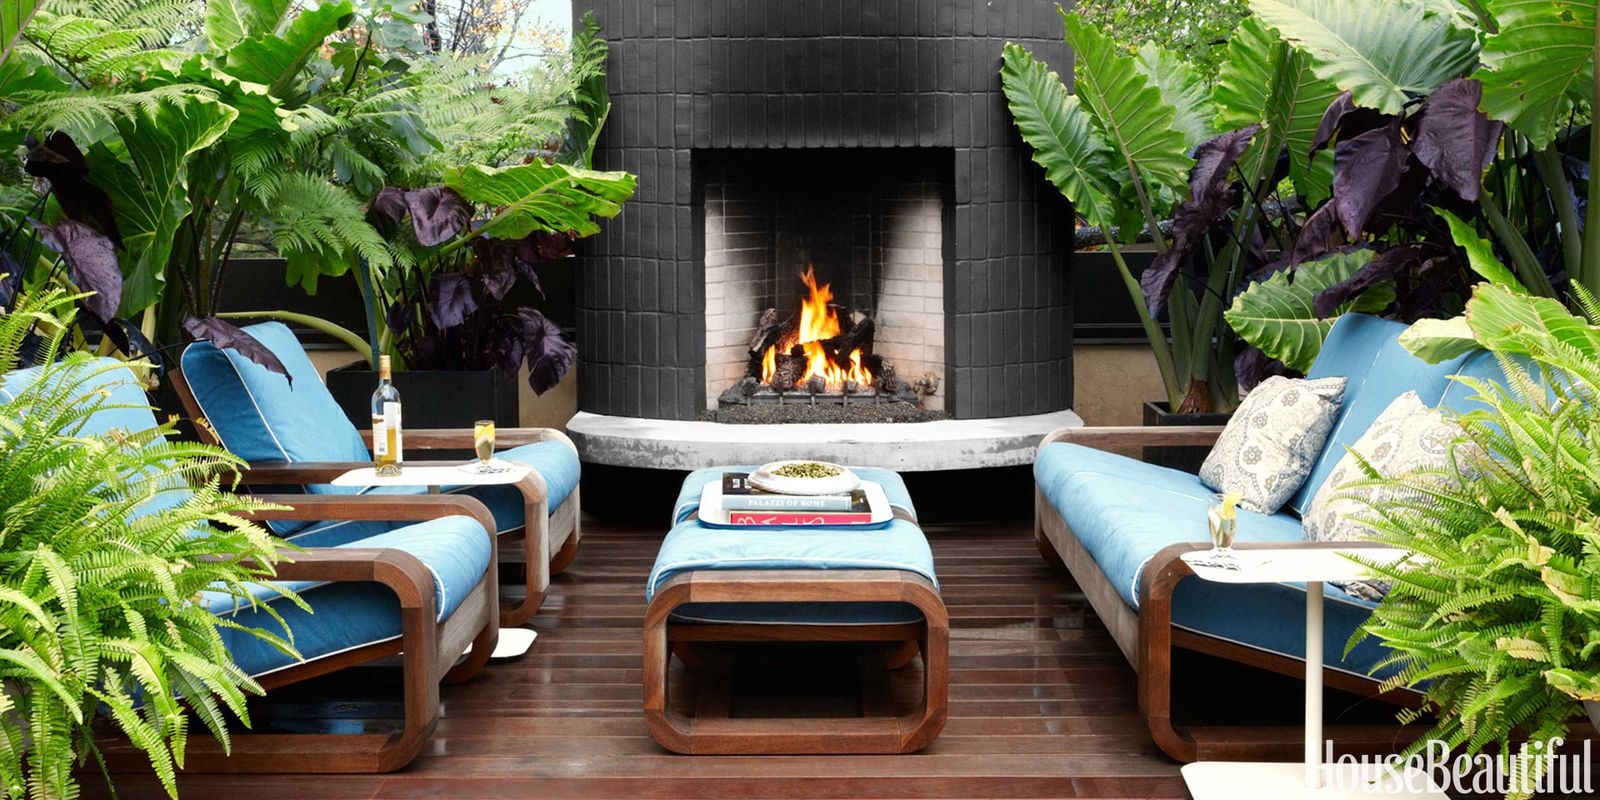 Roof deck house beautiful pinterest favorite pins june for Indoor patio decorating ideas